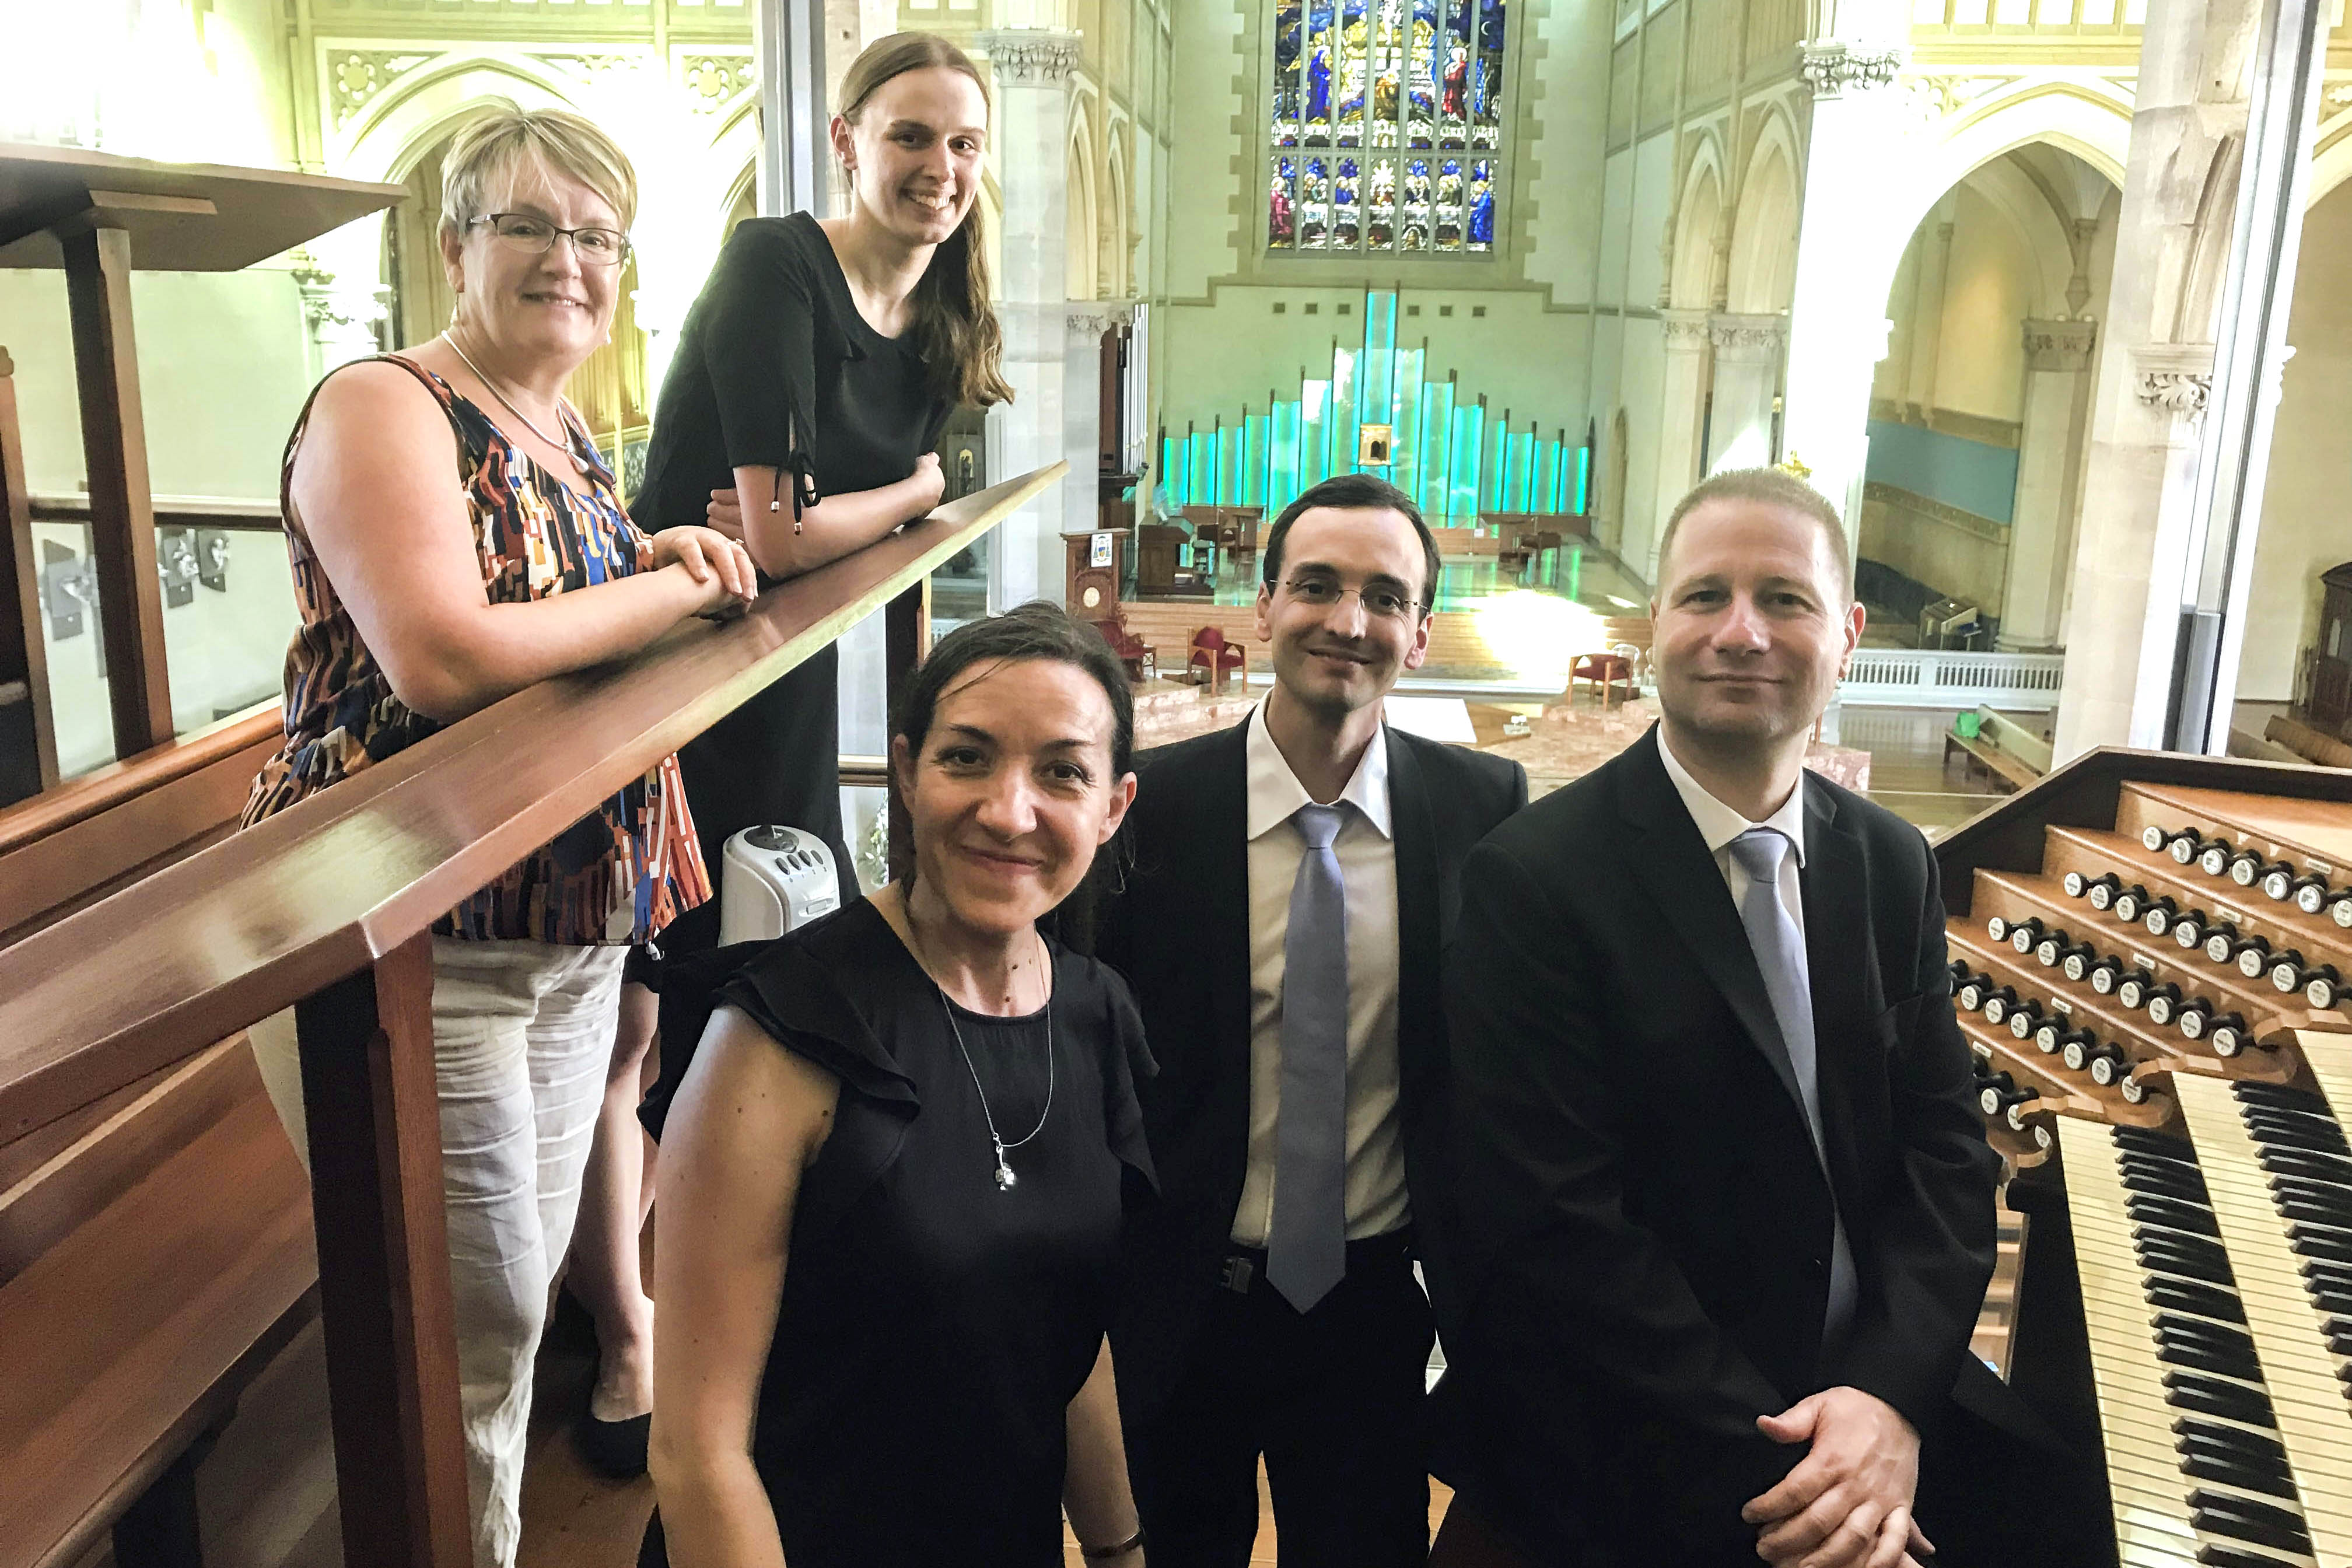 Johann Vexo and Damien Rivière, both Notre Dame musicians, stand with the St Mary's Cathedral Director Jacinta Jakovcevic (front left) and choir members during their recent visit to Perth. Photo: Jacinta Jakovcevic.